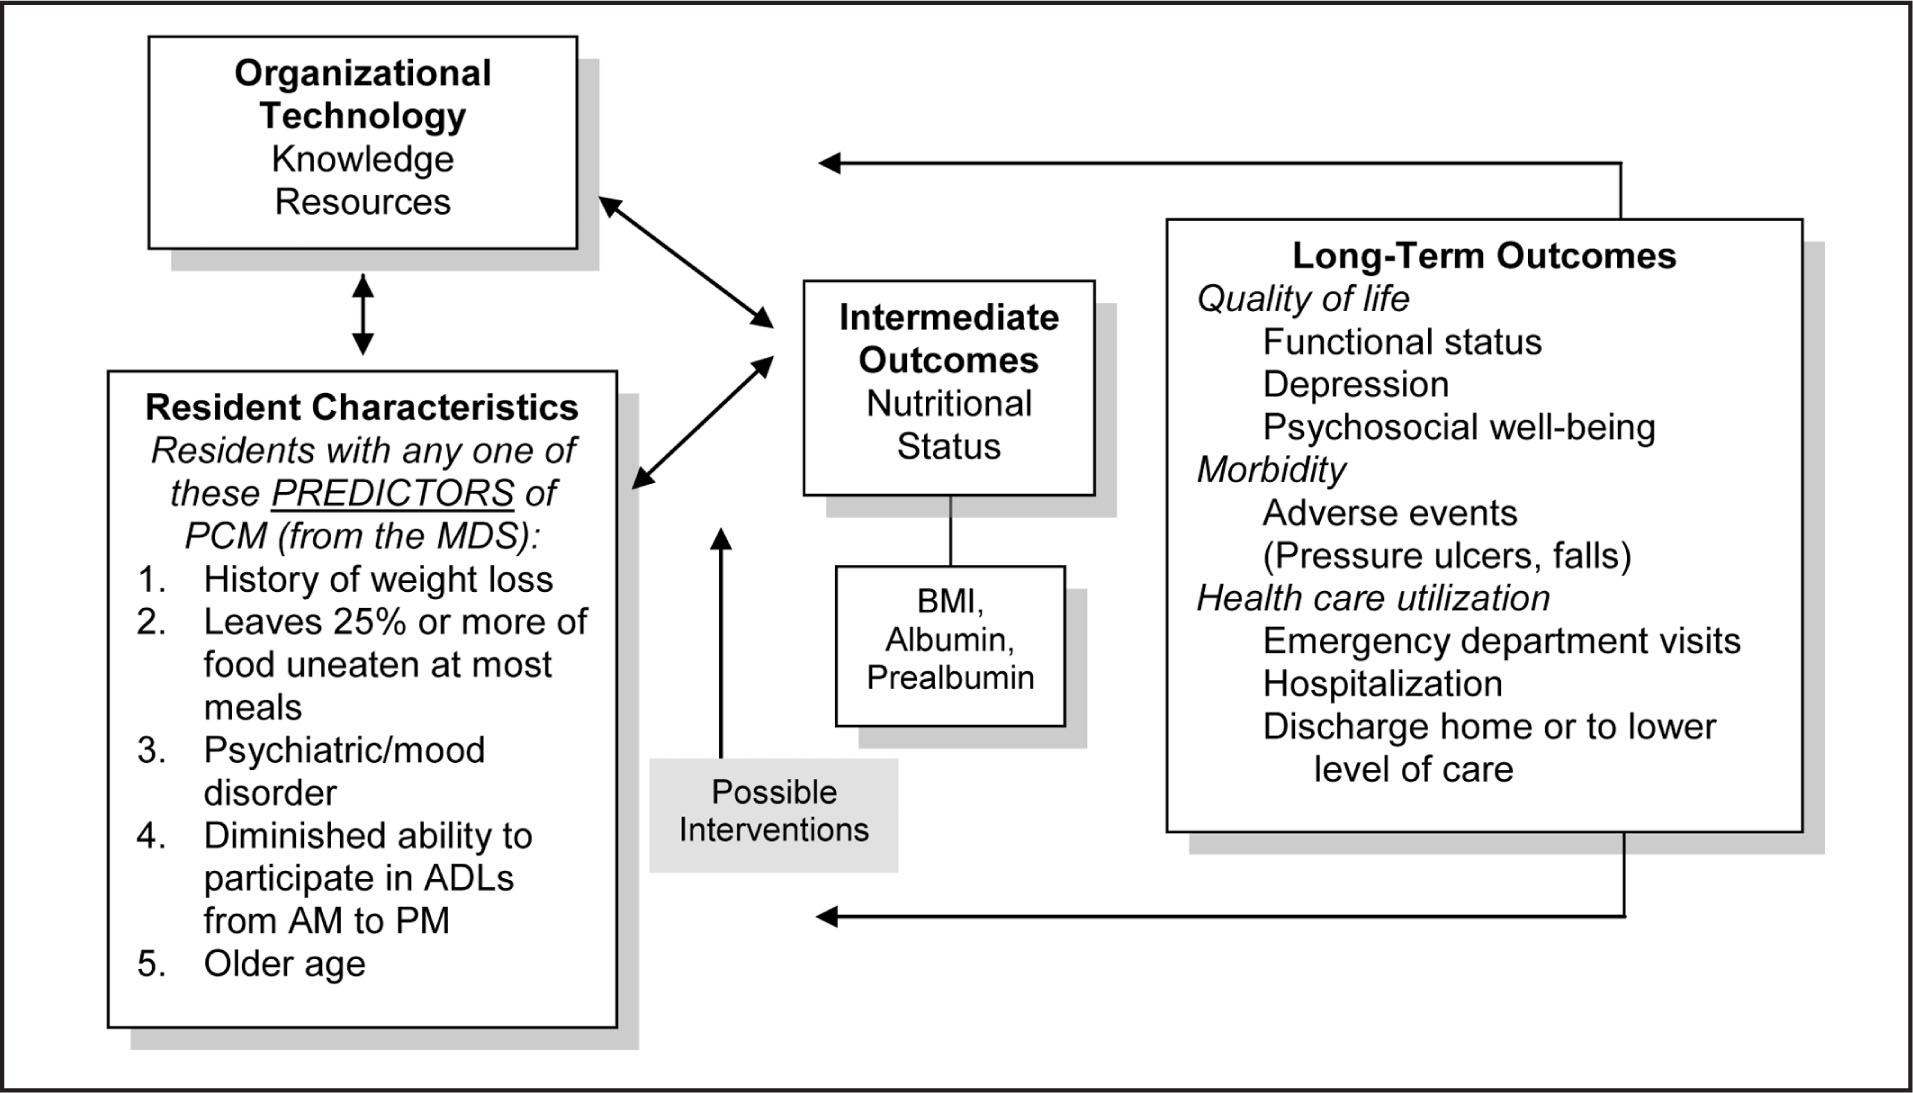 The Quality Nutrition Outcomes-Long Term Care Model.Note. ADLs = Activities of Daily Living; BMI = Body Mass Index; MDS = Minimum Data Set; PCM = Protein-Calorie Malnutrition.